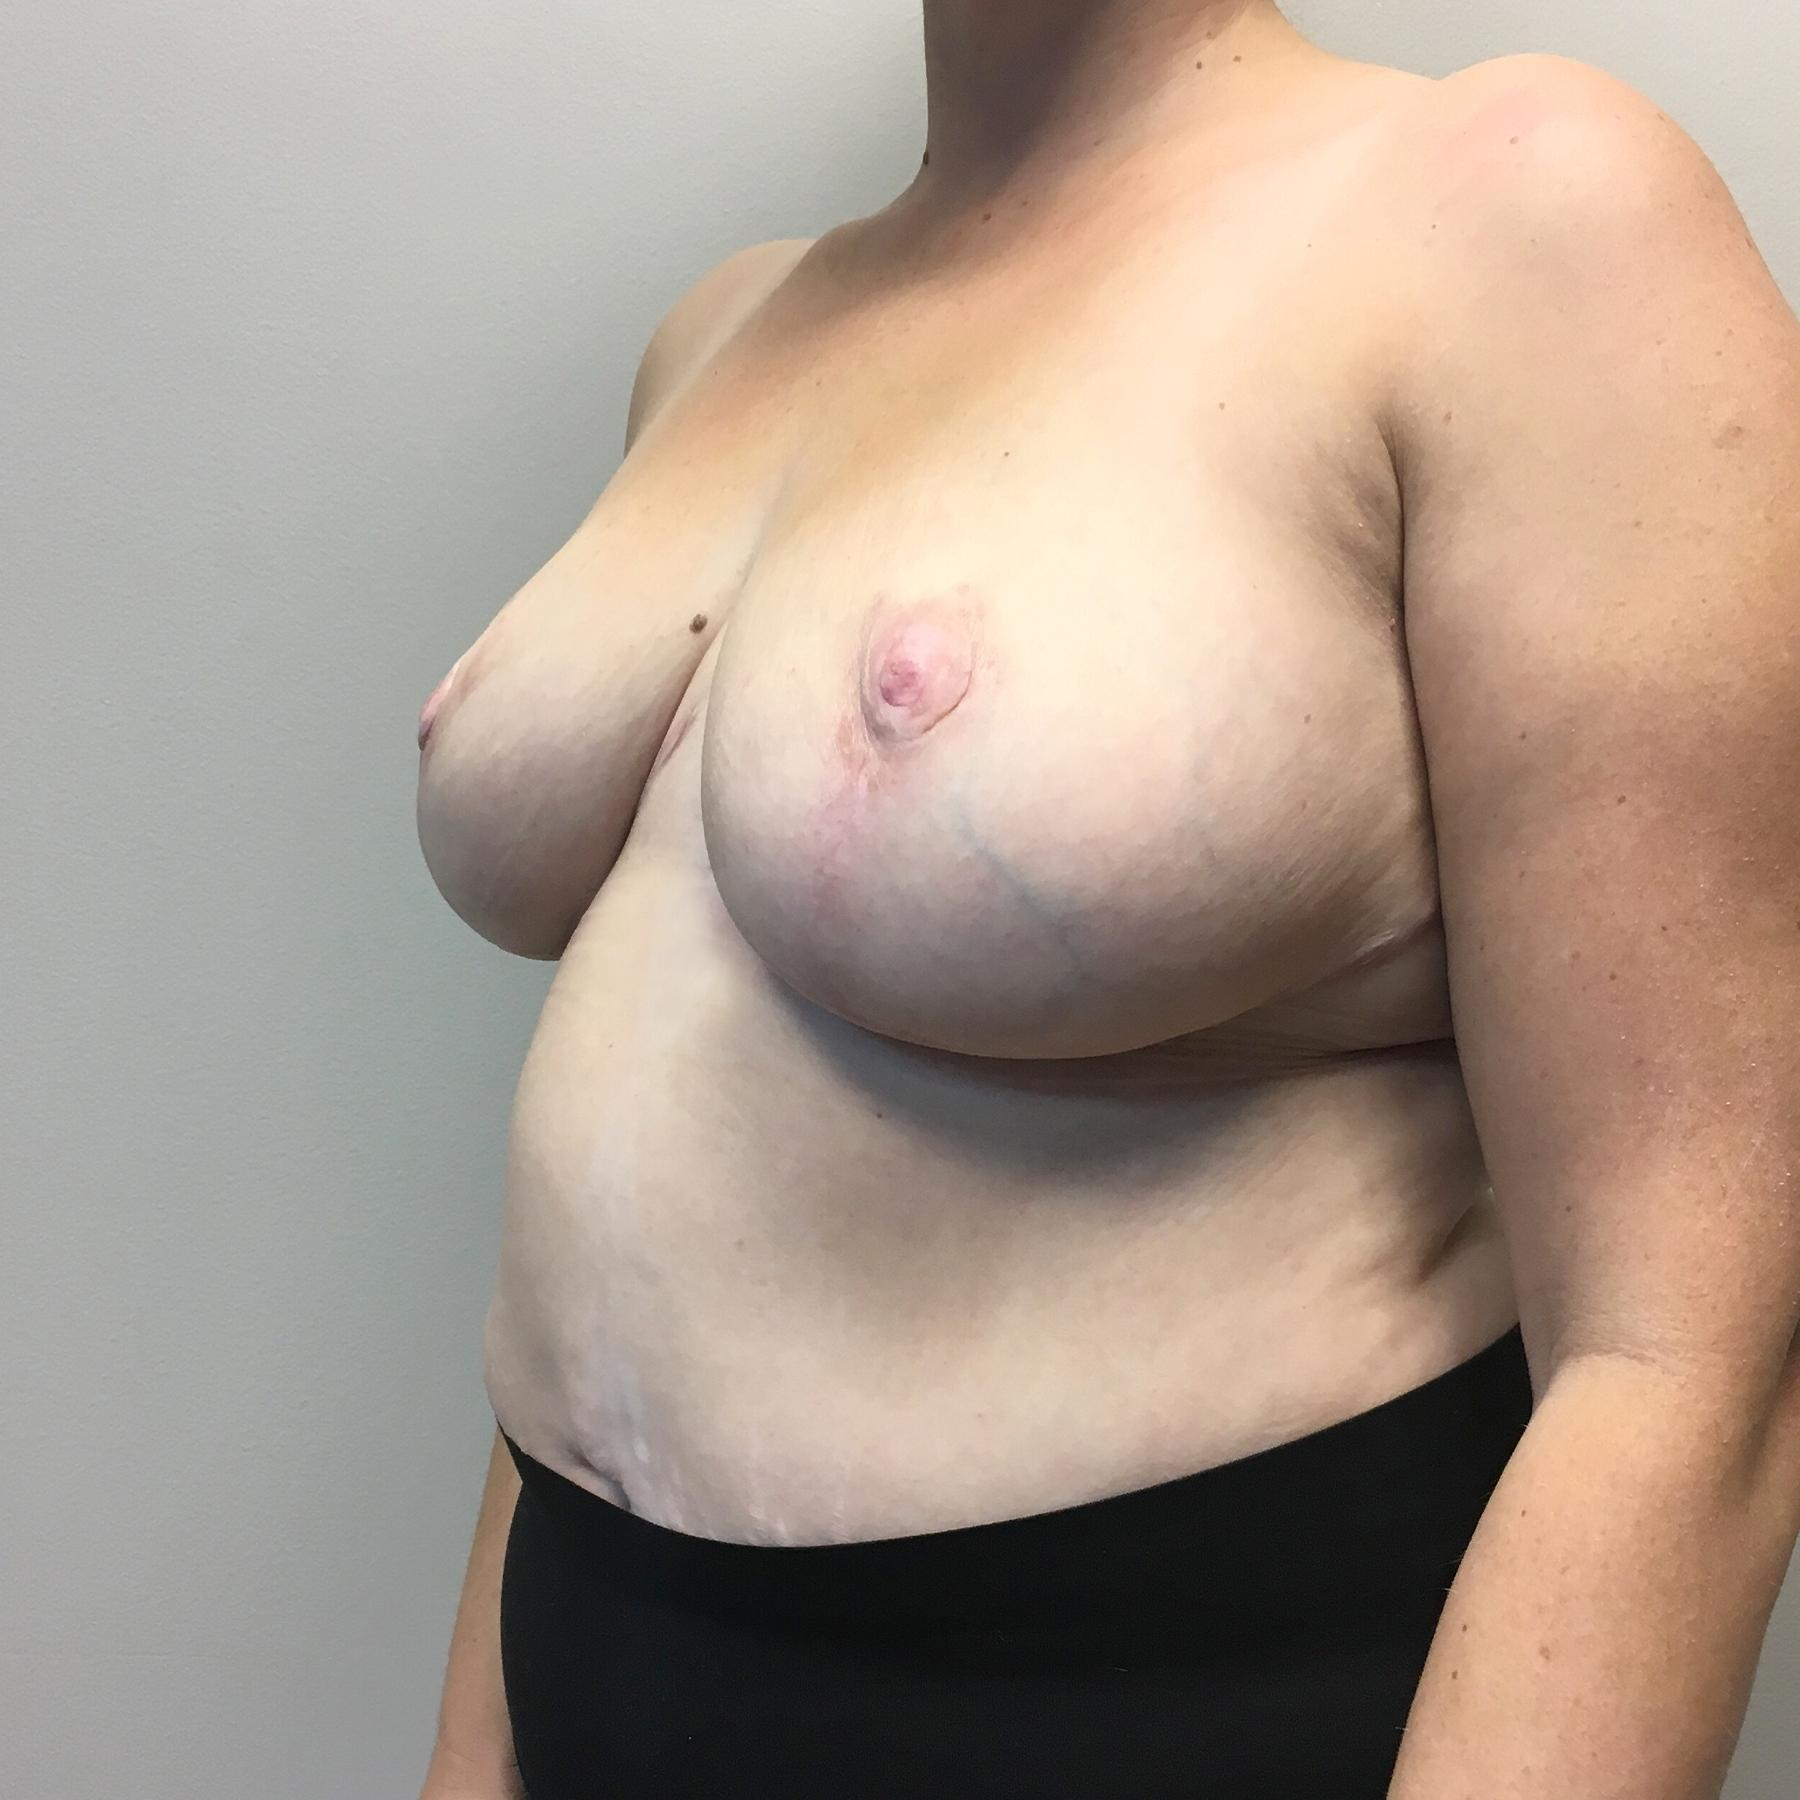 An After photo of a Breast Reduction Plastic Surgery by Dr. Craig Jonov in Seattle, Bellevue, and Kirkland